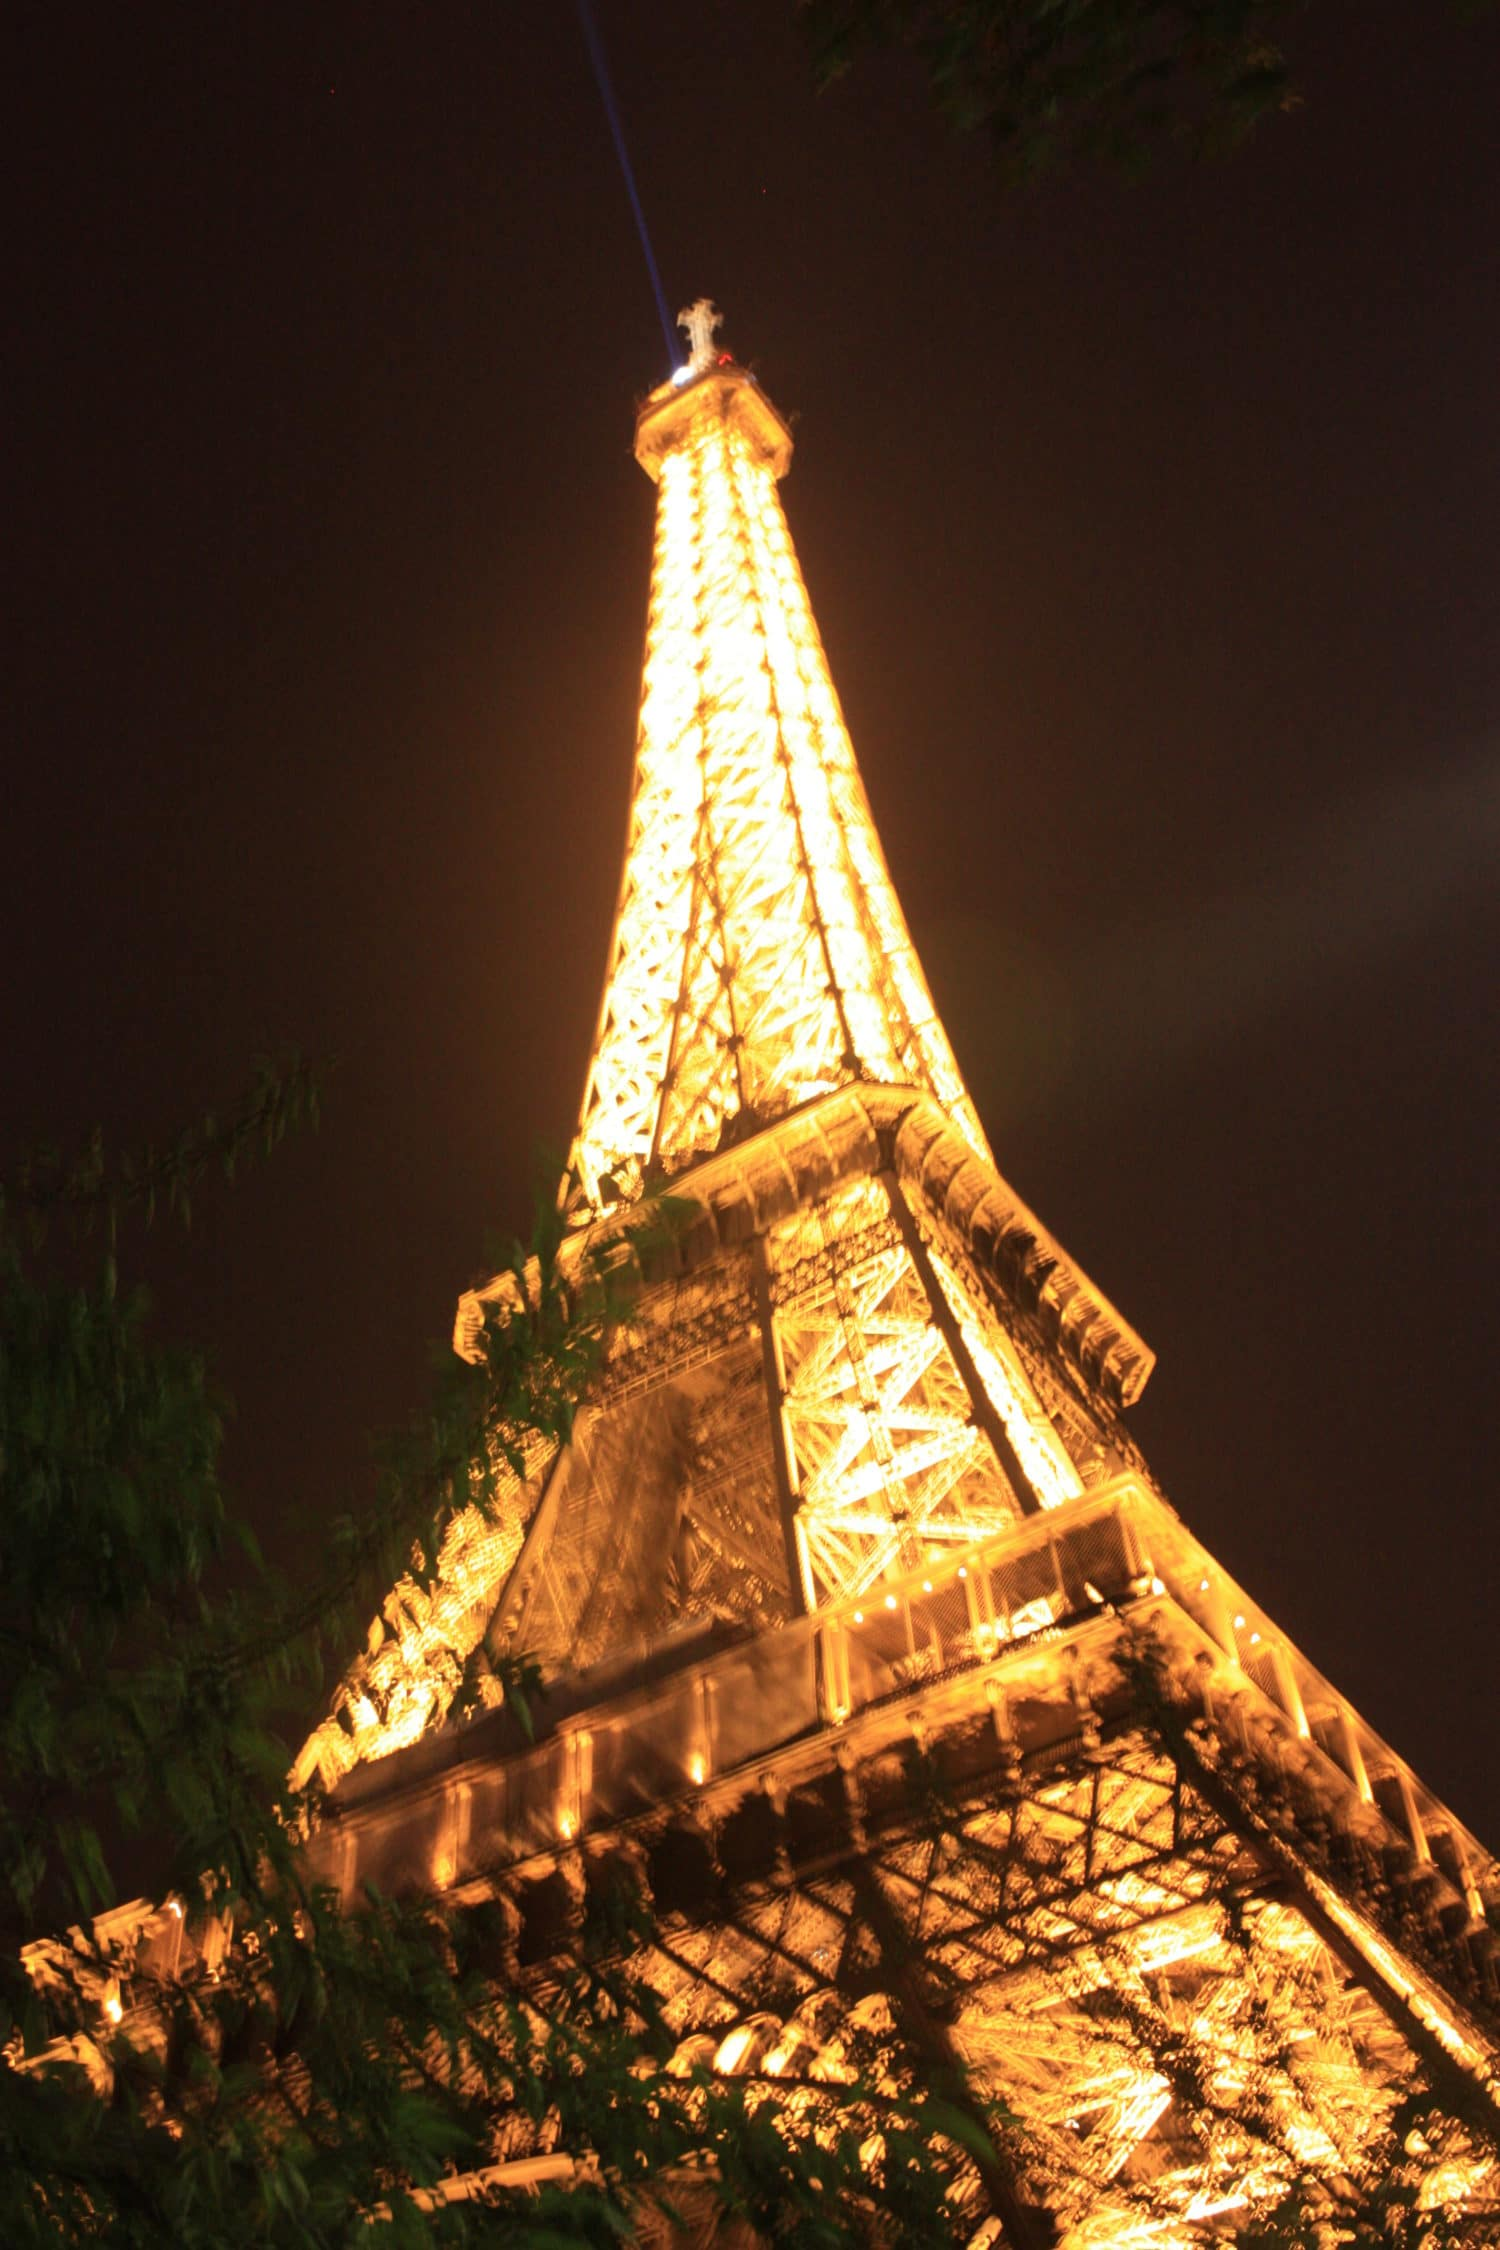 Eiffel Tower illuminated by a family weekend in Paris